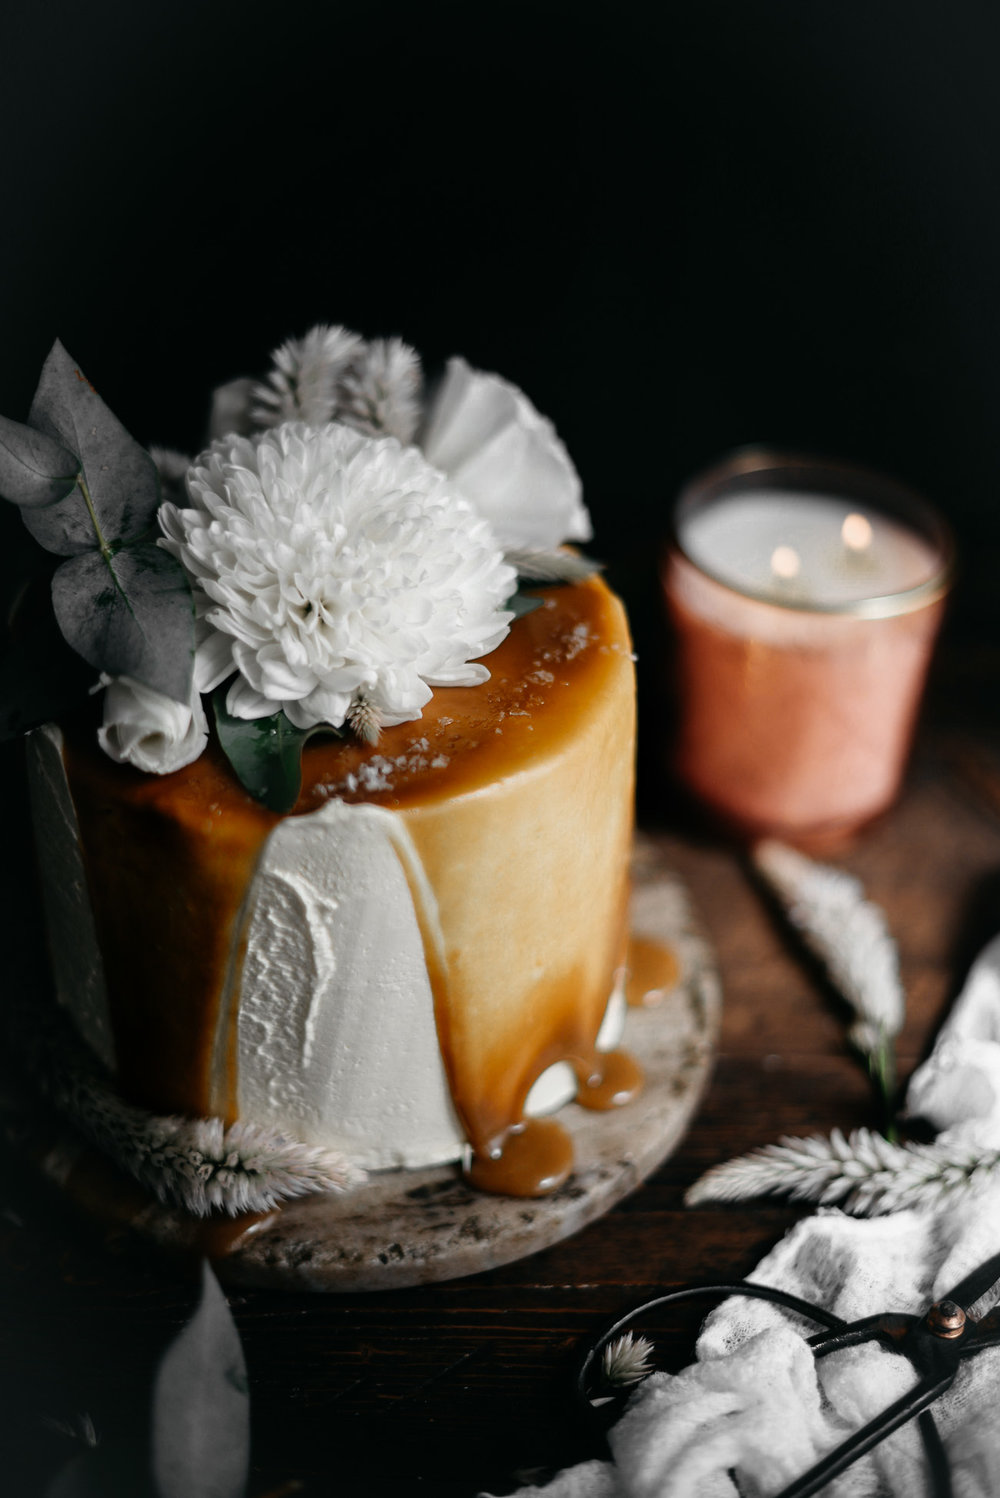 Italian-Orange-Blossom-and-Almond-Cake-with-Orange-Curd-Mascarpone-Swiss-Meringue-Buttercream-and-Fleur-d'Oranger-Caramel-12.jpg